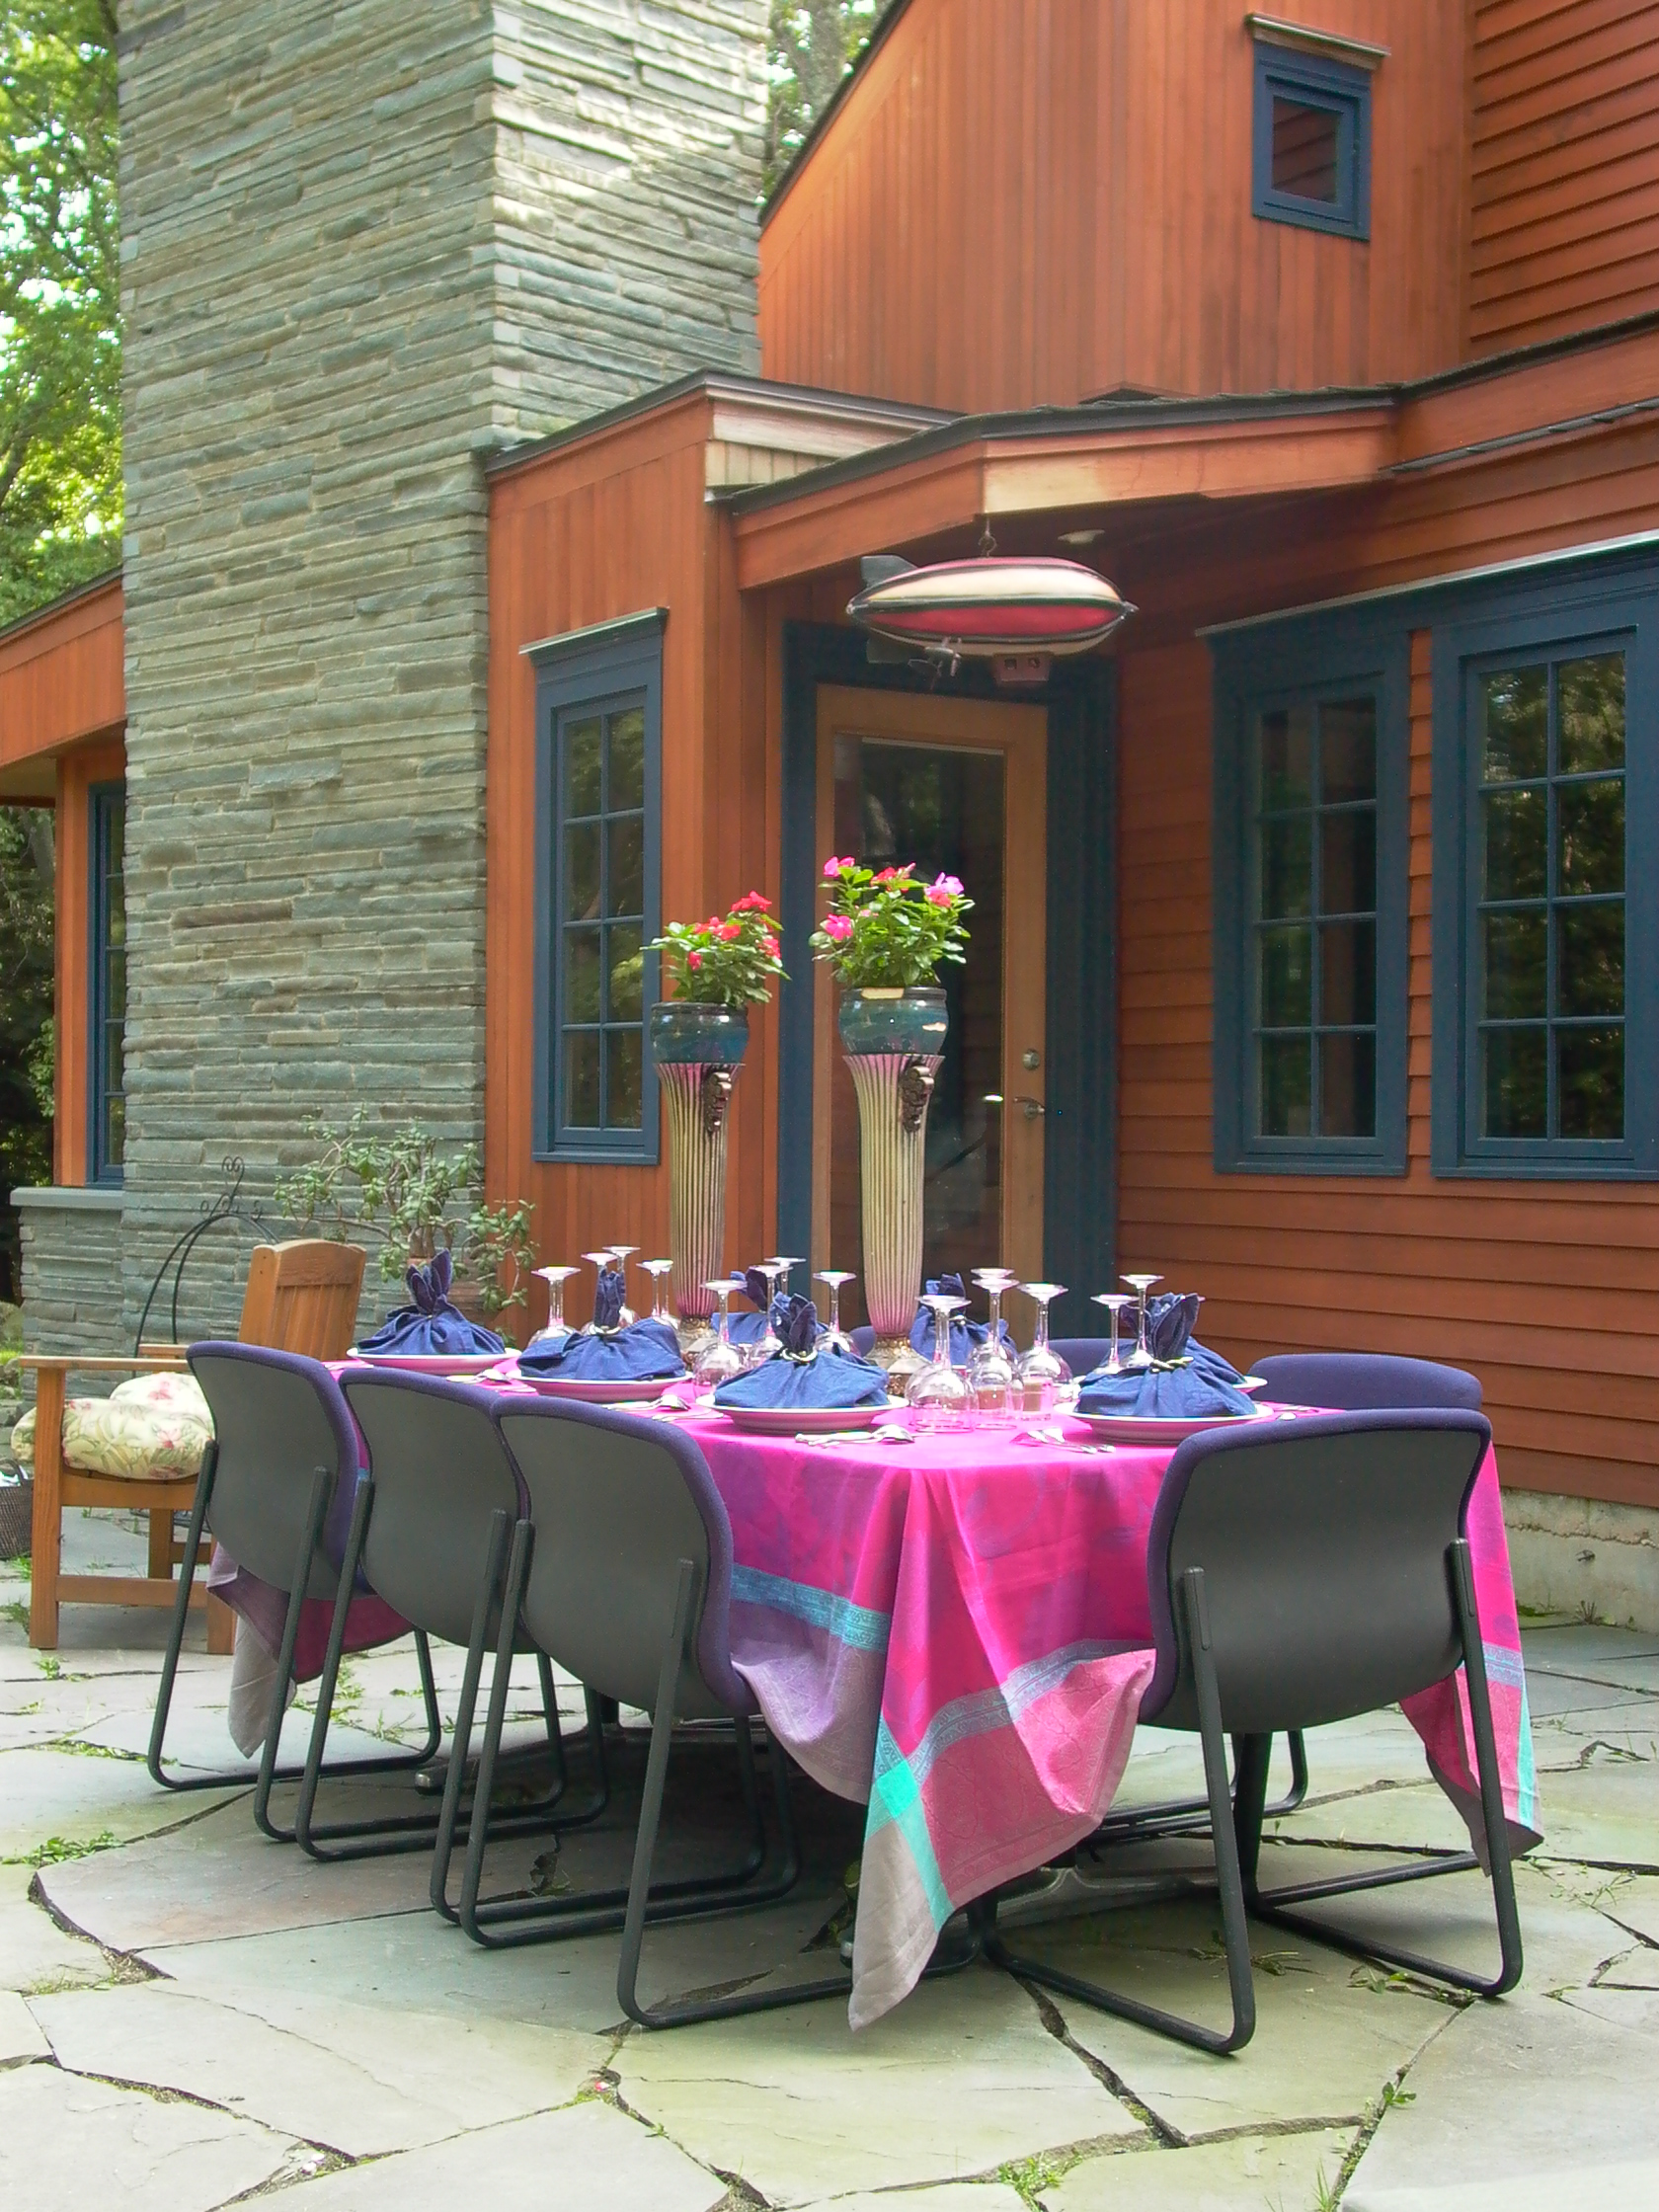 Oaknell dinner on the patio house background.JPG